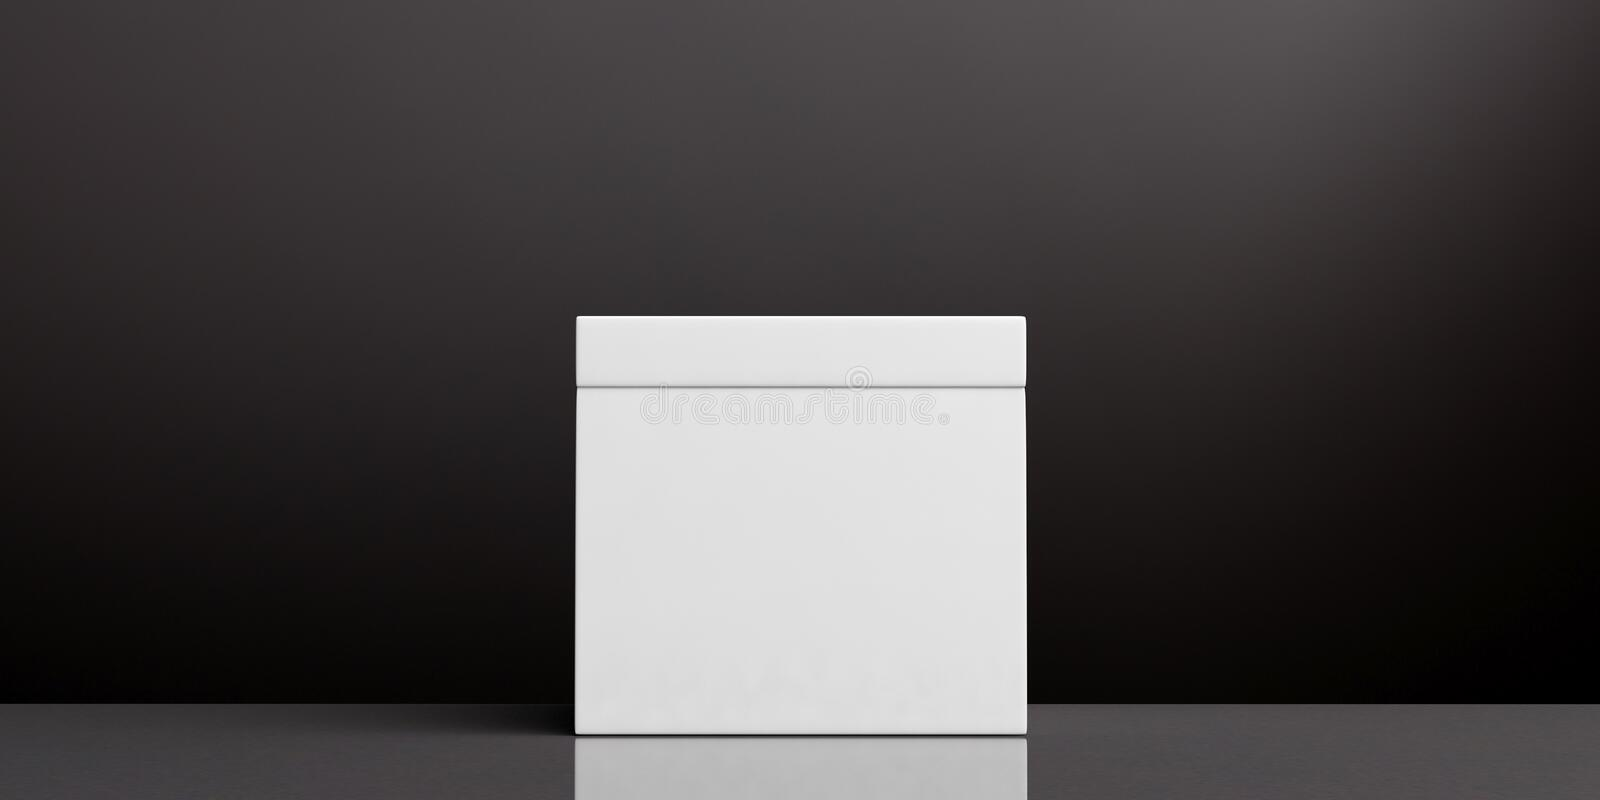 White blank ballot box on black background, copy space. 3d illustration. Elections concept. White blank ballot box on black background, copy space. 3d royalty free illustration